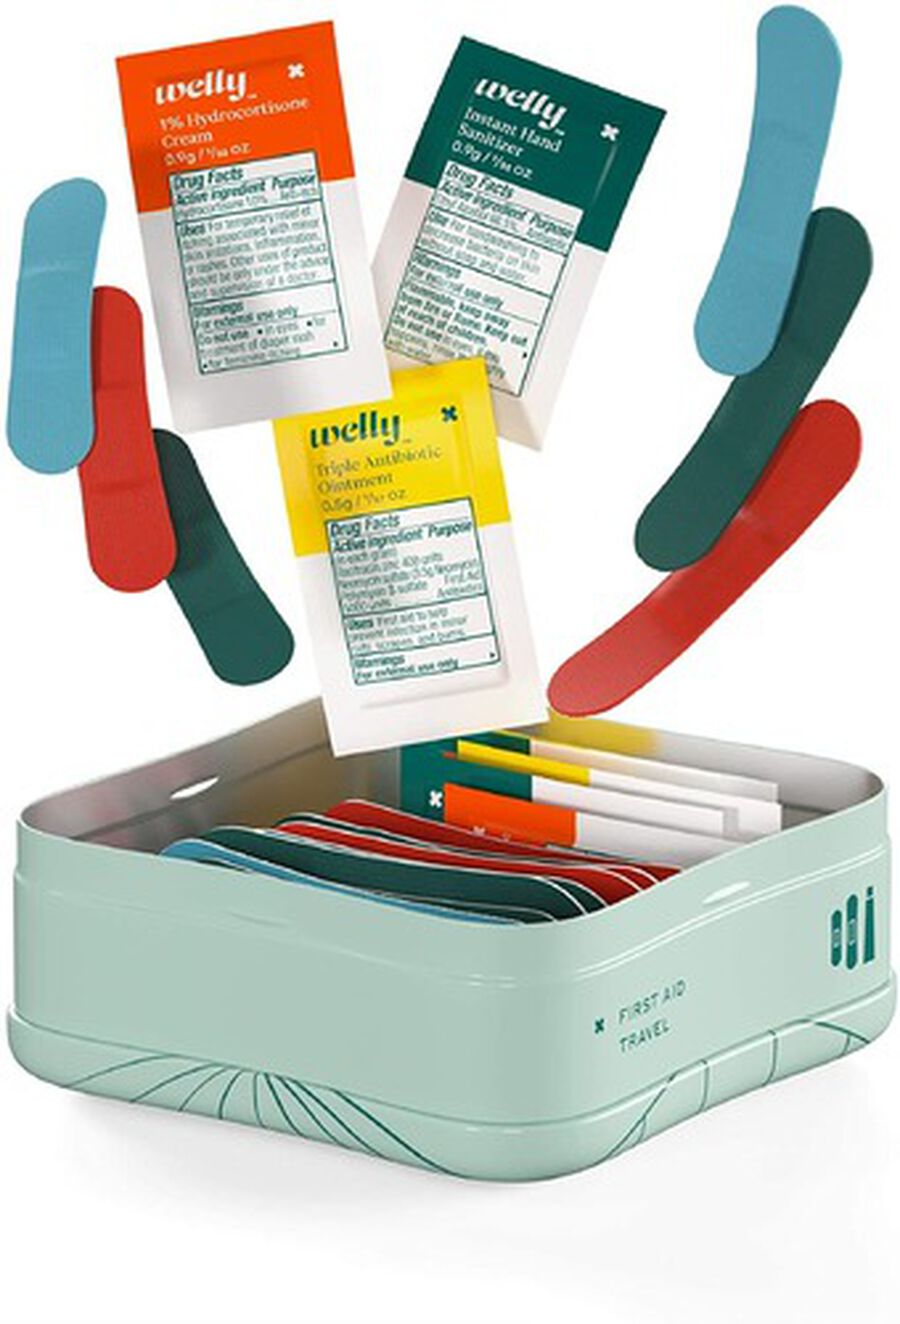 Welly First Aid Kit Bundle, 78 pc, , large image number 2